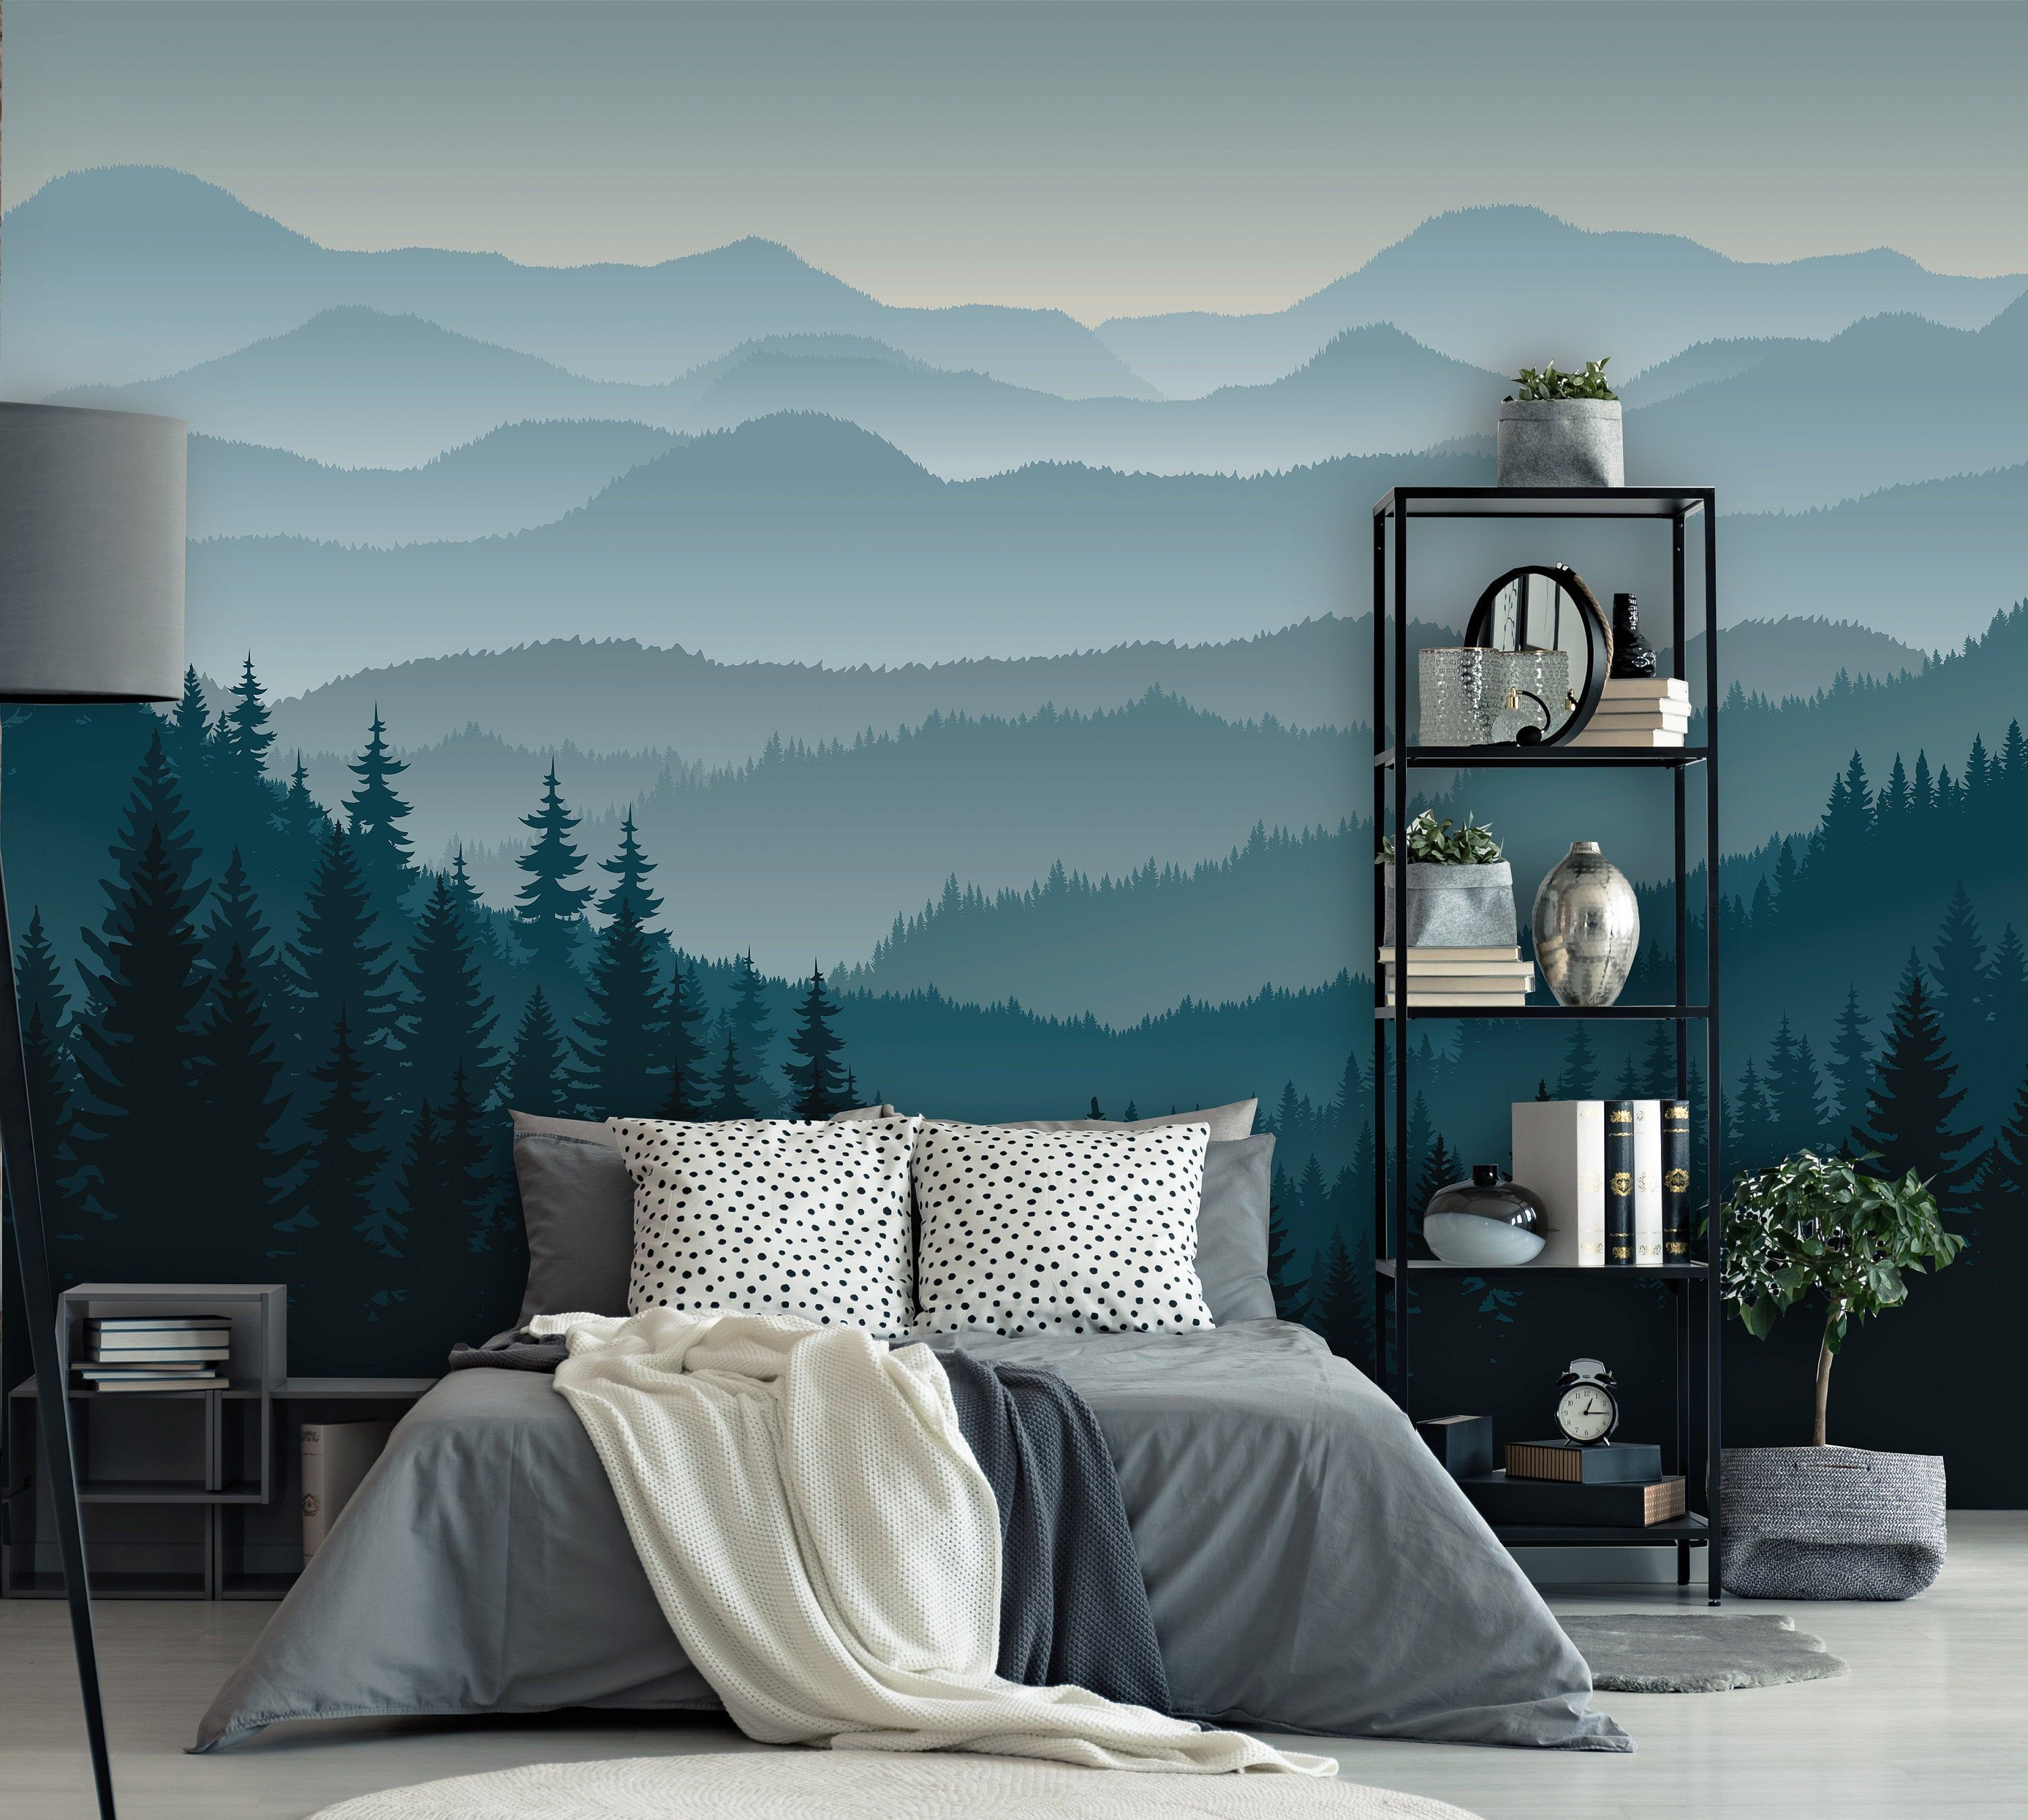 Abnehmbare Schale N Stick Tapete Selbstklebende Fototapete 3d Mountain Wandbild Tapete Kinderzimmer Ombre Blue Mountain Pine Wald Baume In 2020 Mountain Mural Bedroom Wall Art Bedroom Wall